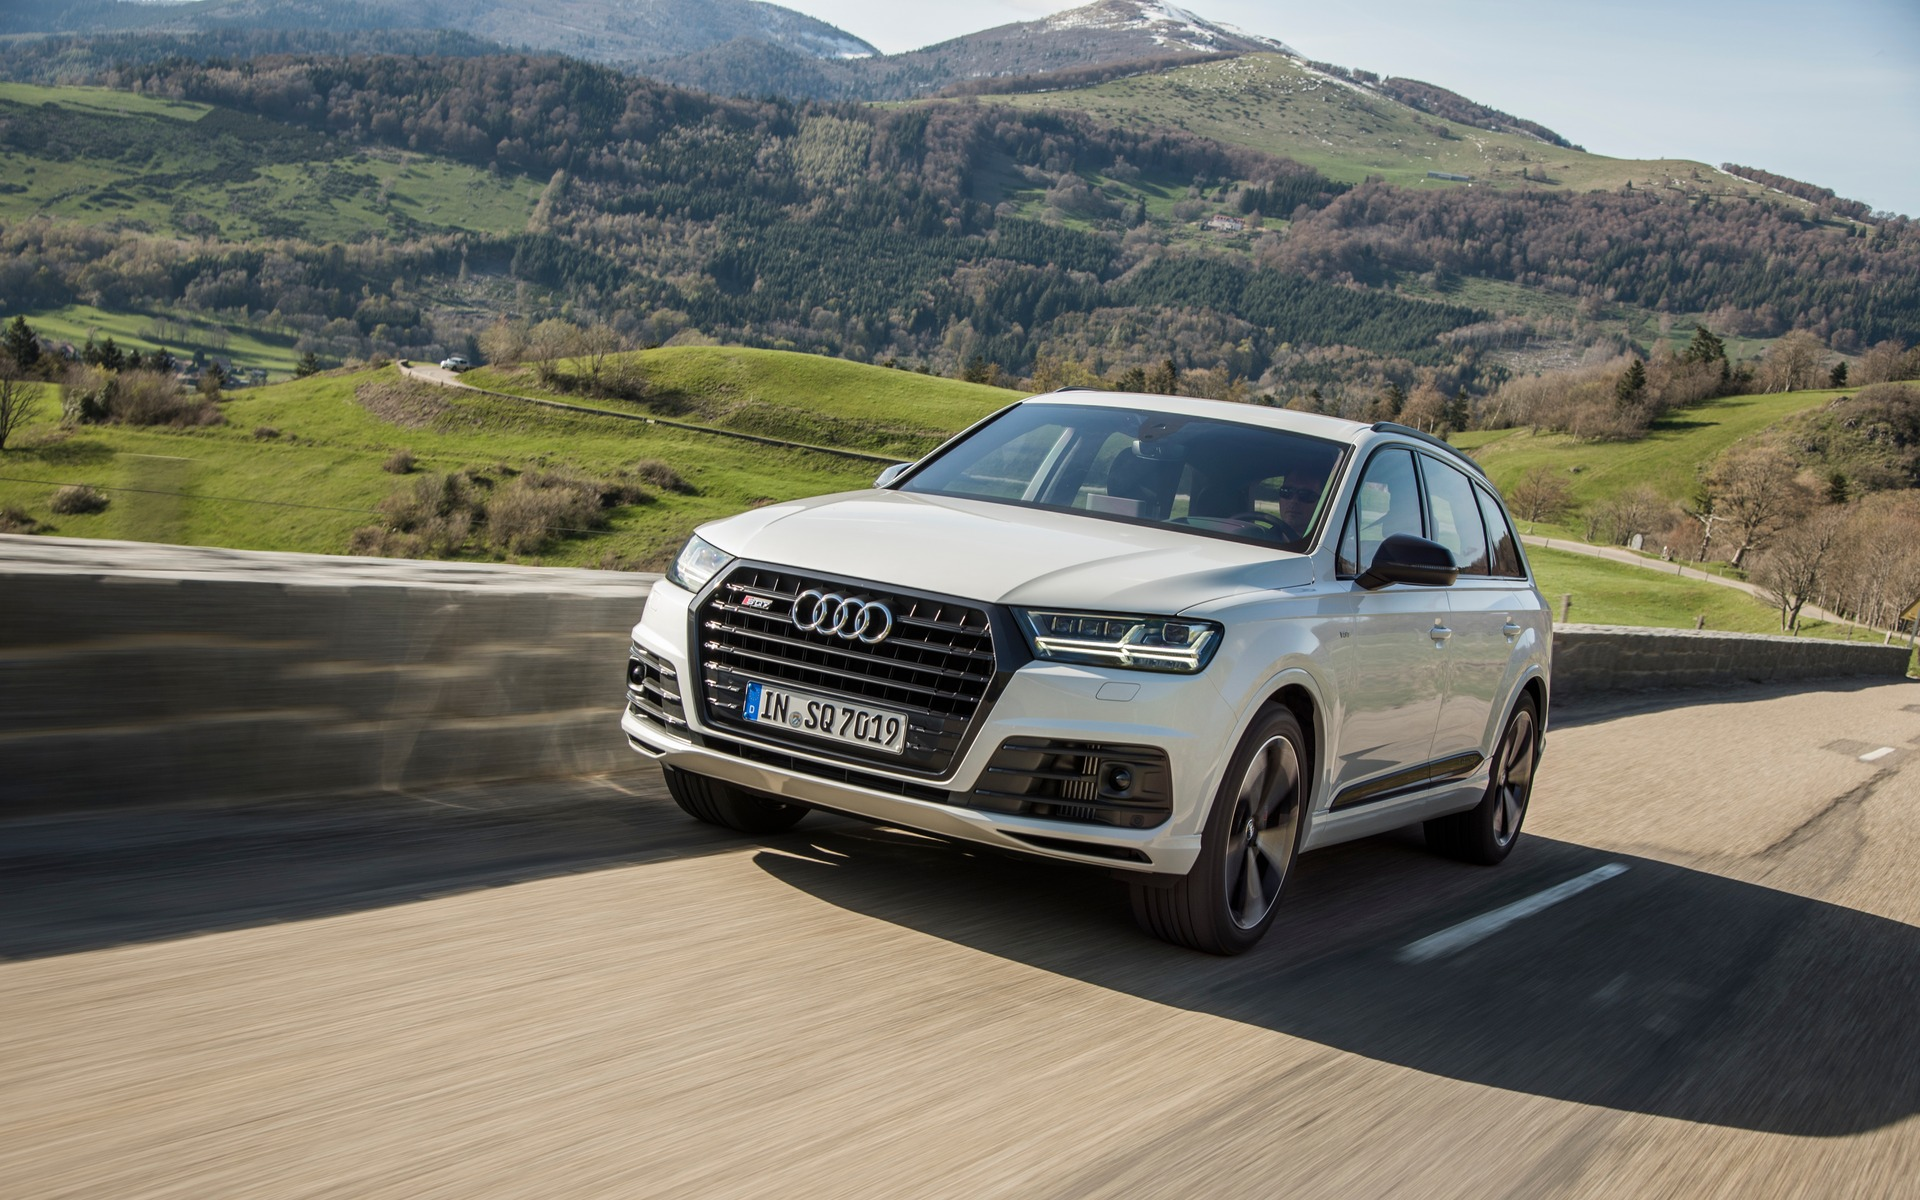 audi sq7 tdi 2018 pas hybride mais l lectricit prime guide auto. Black Bedroom Furniture Sets. Home Design Ideas